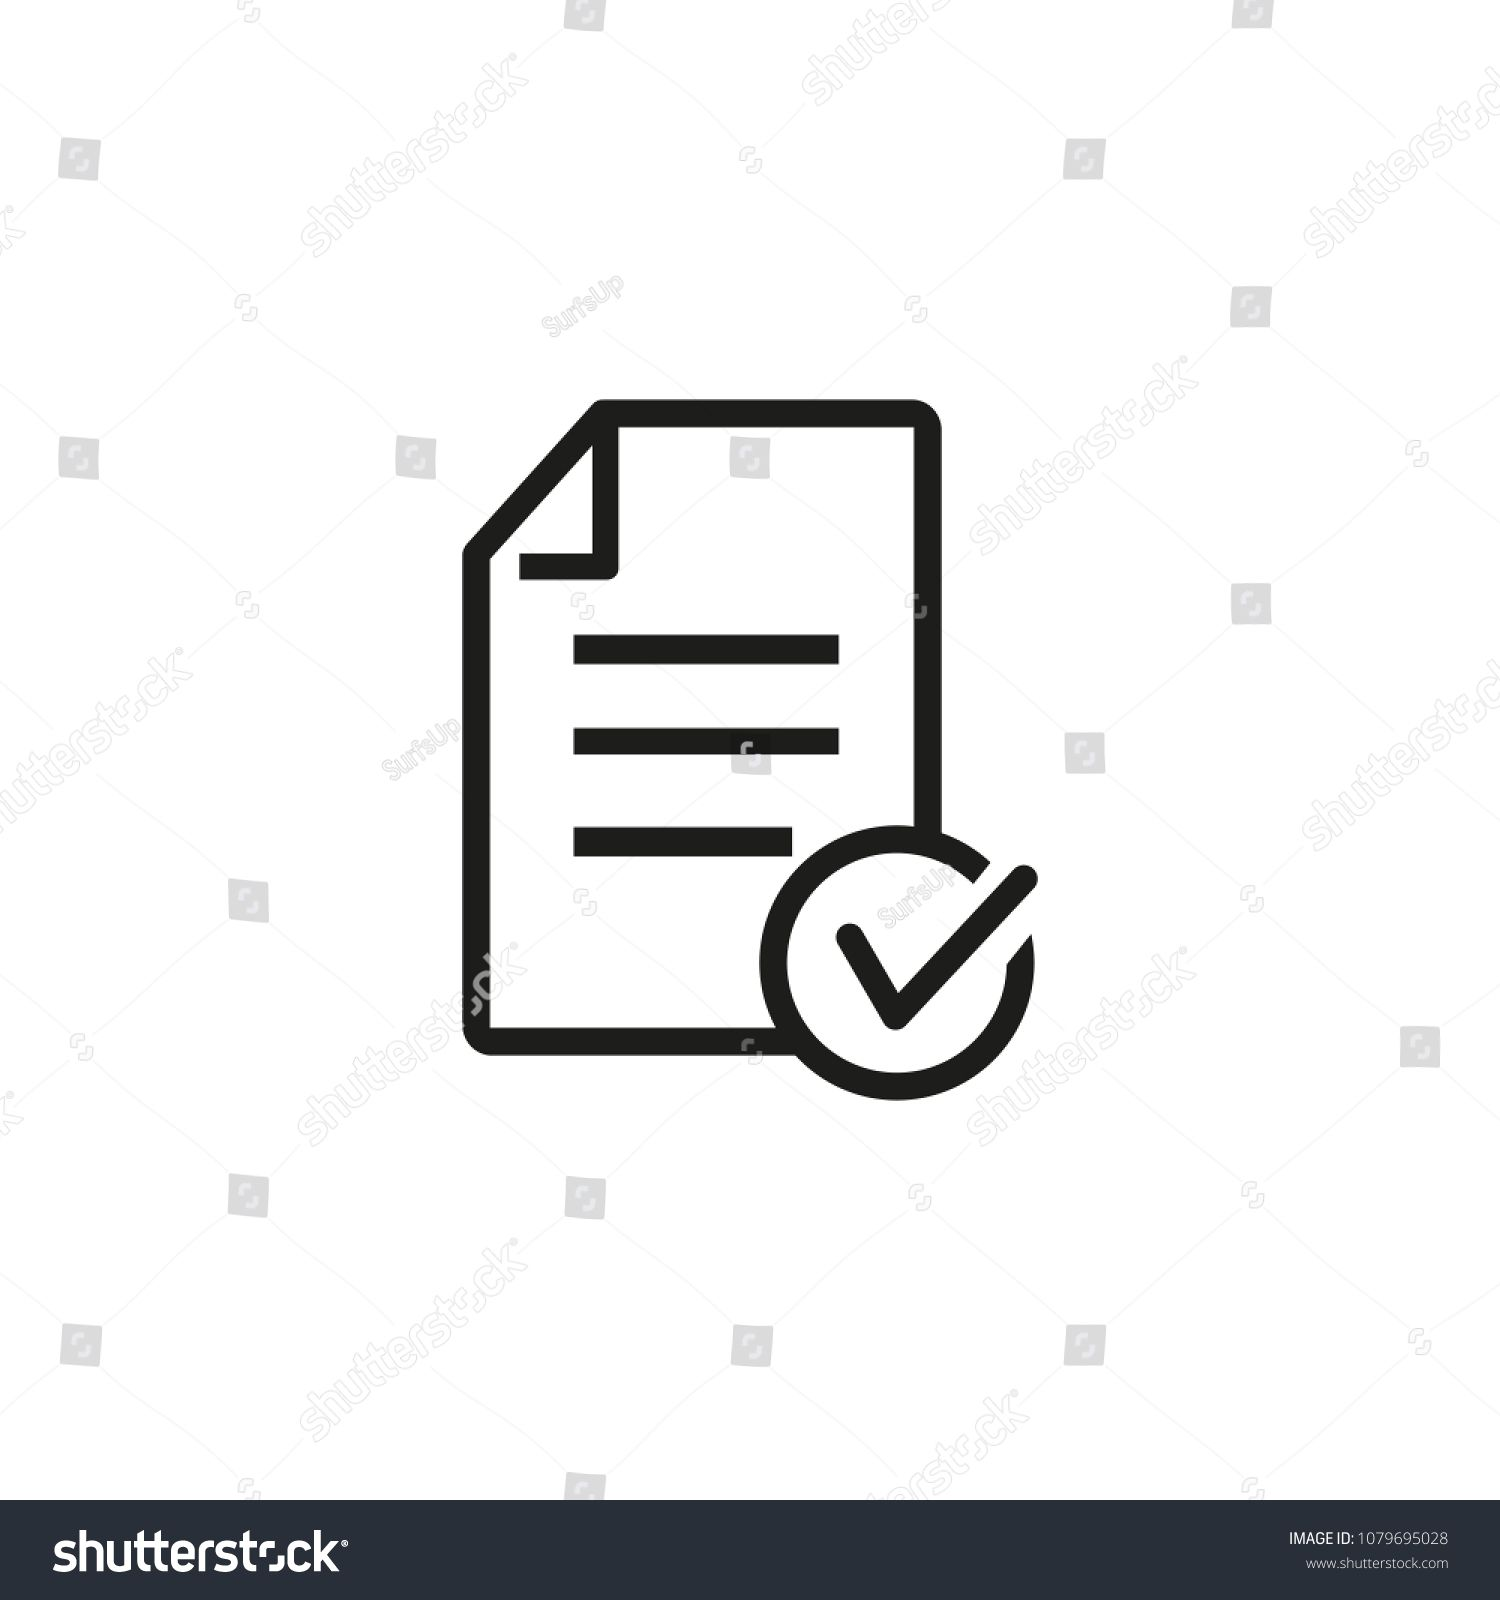 Icon Of Approved Loan Checklist File Document Paperwork Concept Can Be Used For Topics Like Qualification Business Find Icons Flyer Template Logo Design